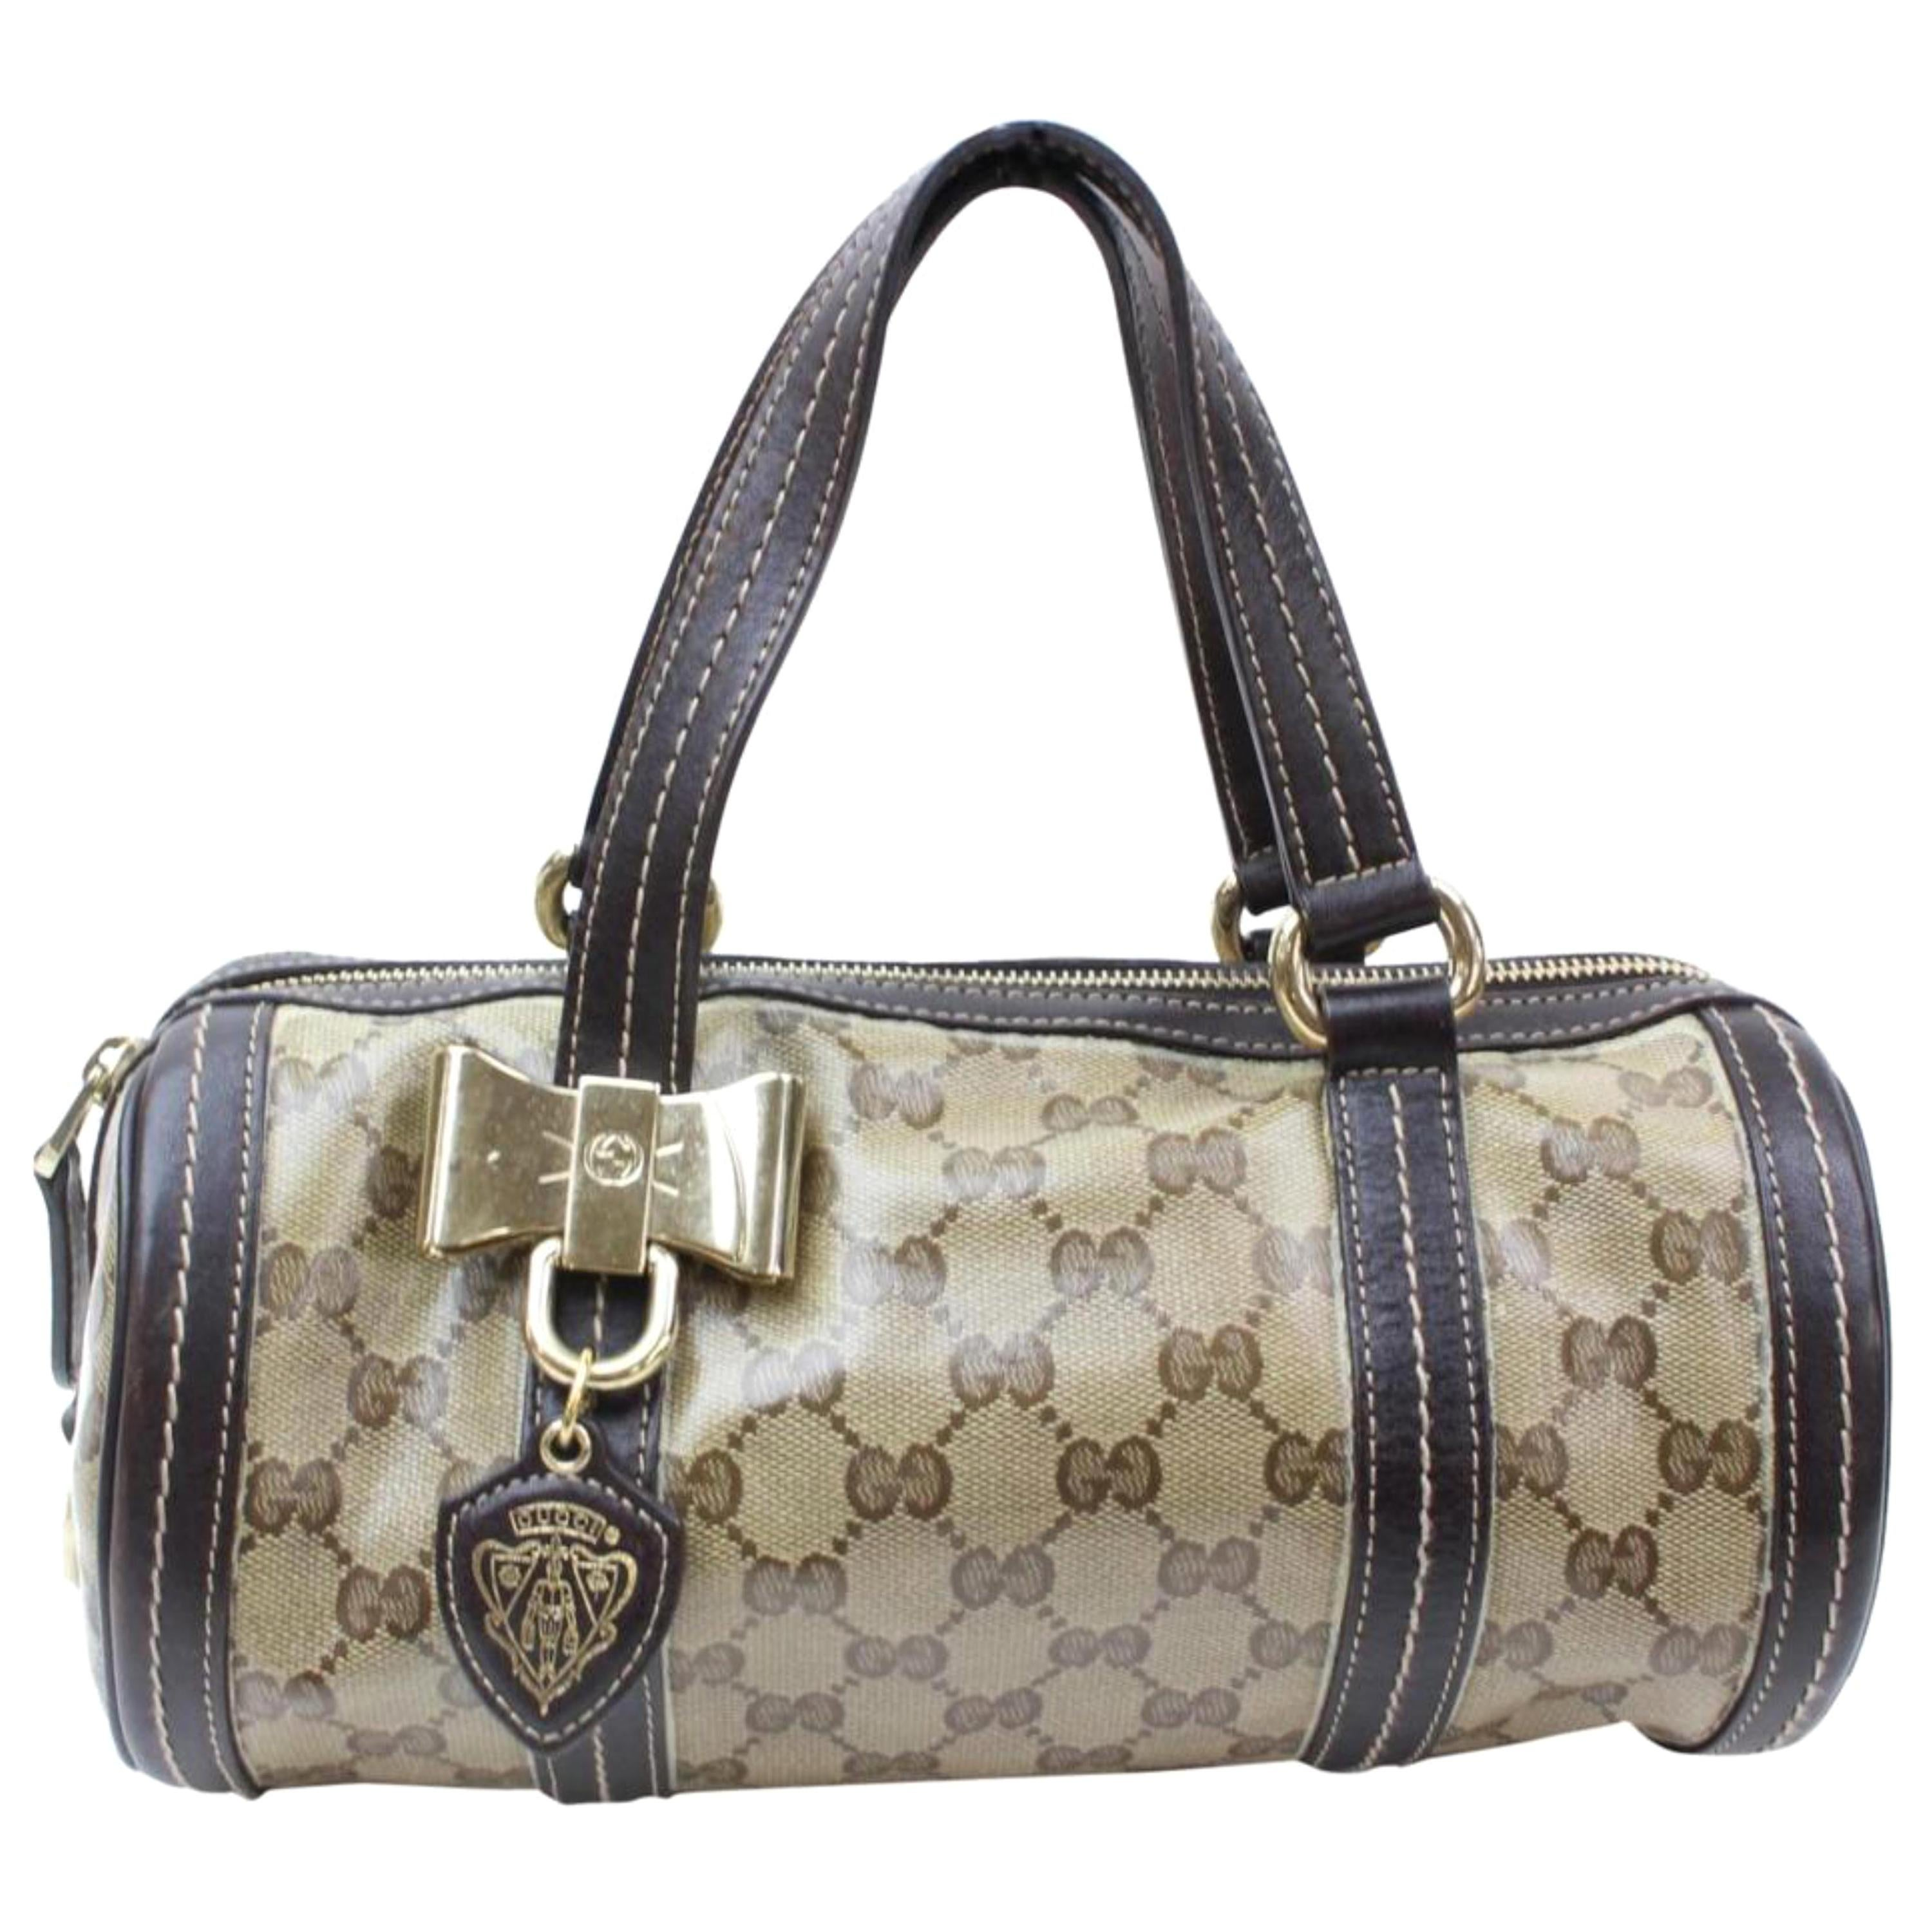 fd74107ab7d1 Vintage Gucci Evening Bags and Minaudières - 91 For Sale at 1stdibs